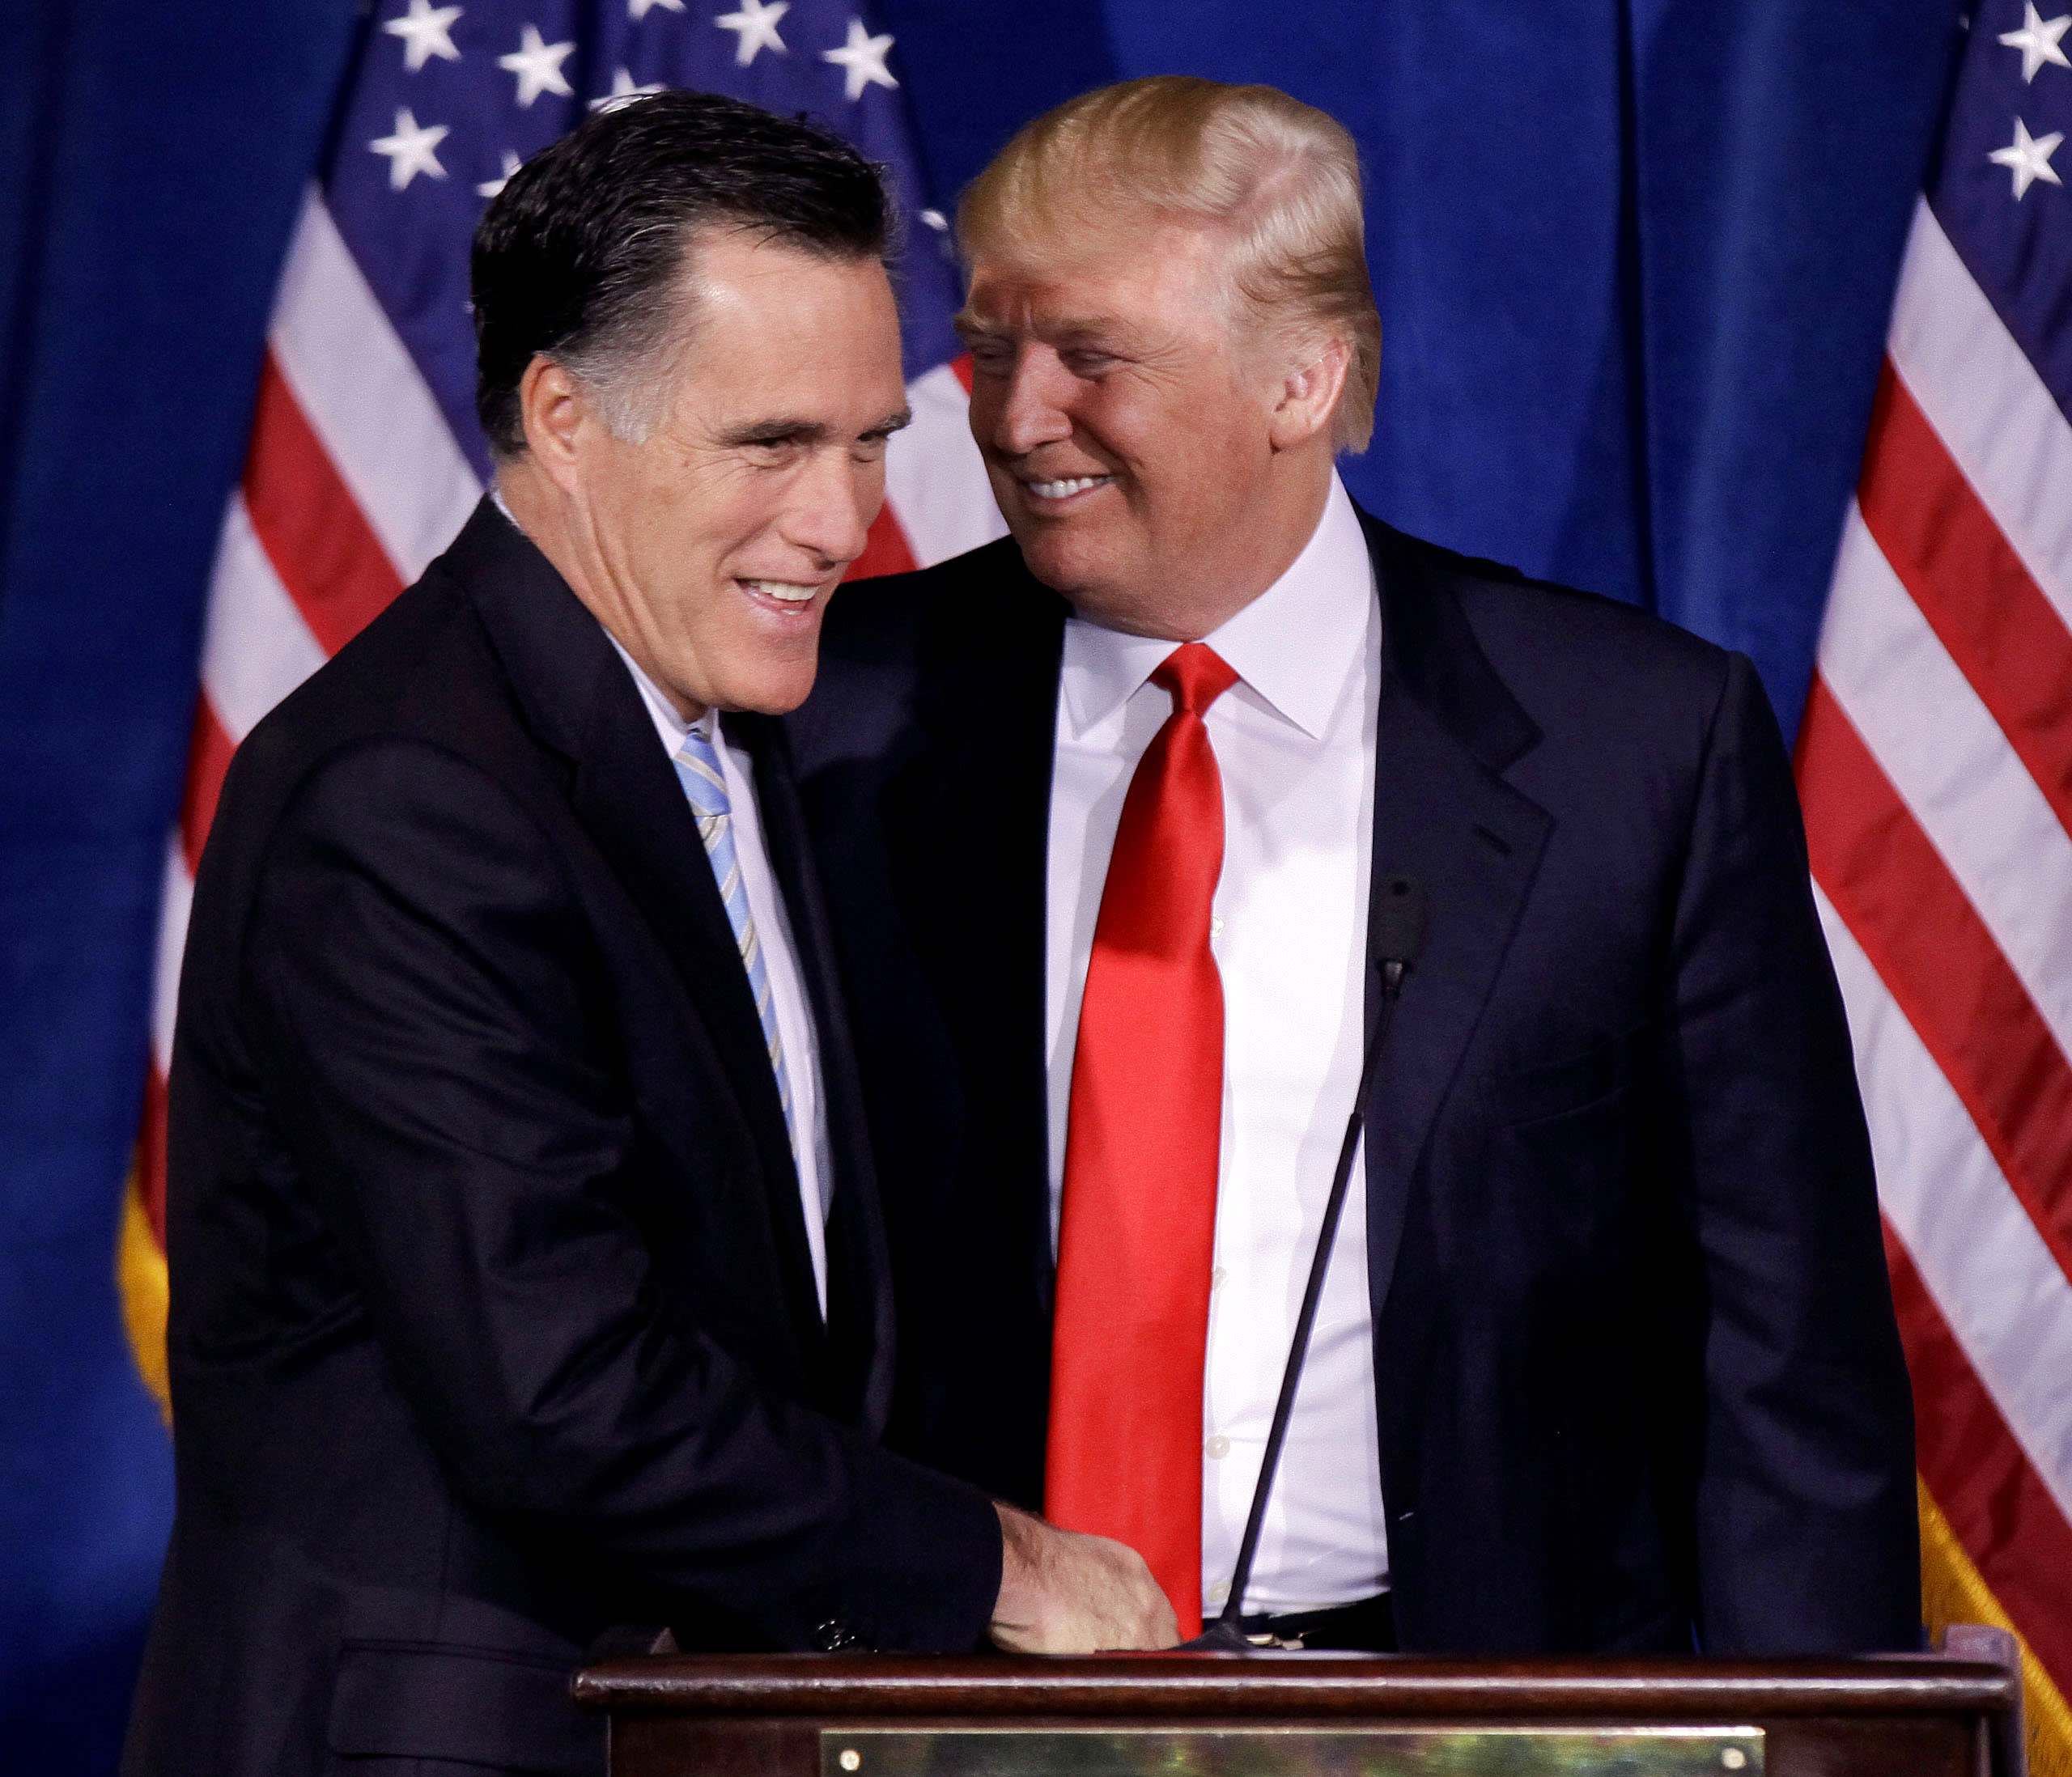 FILE - In this Feb. 2, 2012 file photo, Donald Trump greets Republican presidential candidate, former Massachusetts Gov. Mitt Romney during a news conference in Las Vegas. Romney is set to clinch the Republican nomination for president Tuesday with a win in the Texas primary, a feat of endurance for a candidate who came up short four years ago and watched this year as voters flirted with a carousel of front-runners before eventually warming to him. (AP Photo/Julie Jacobson, File)